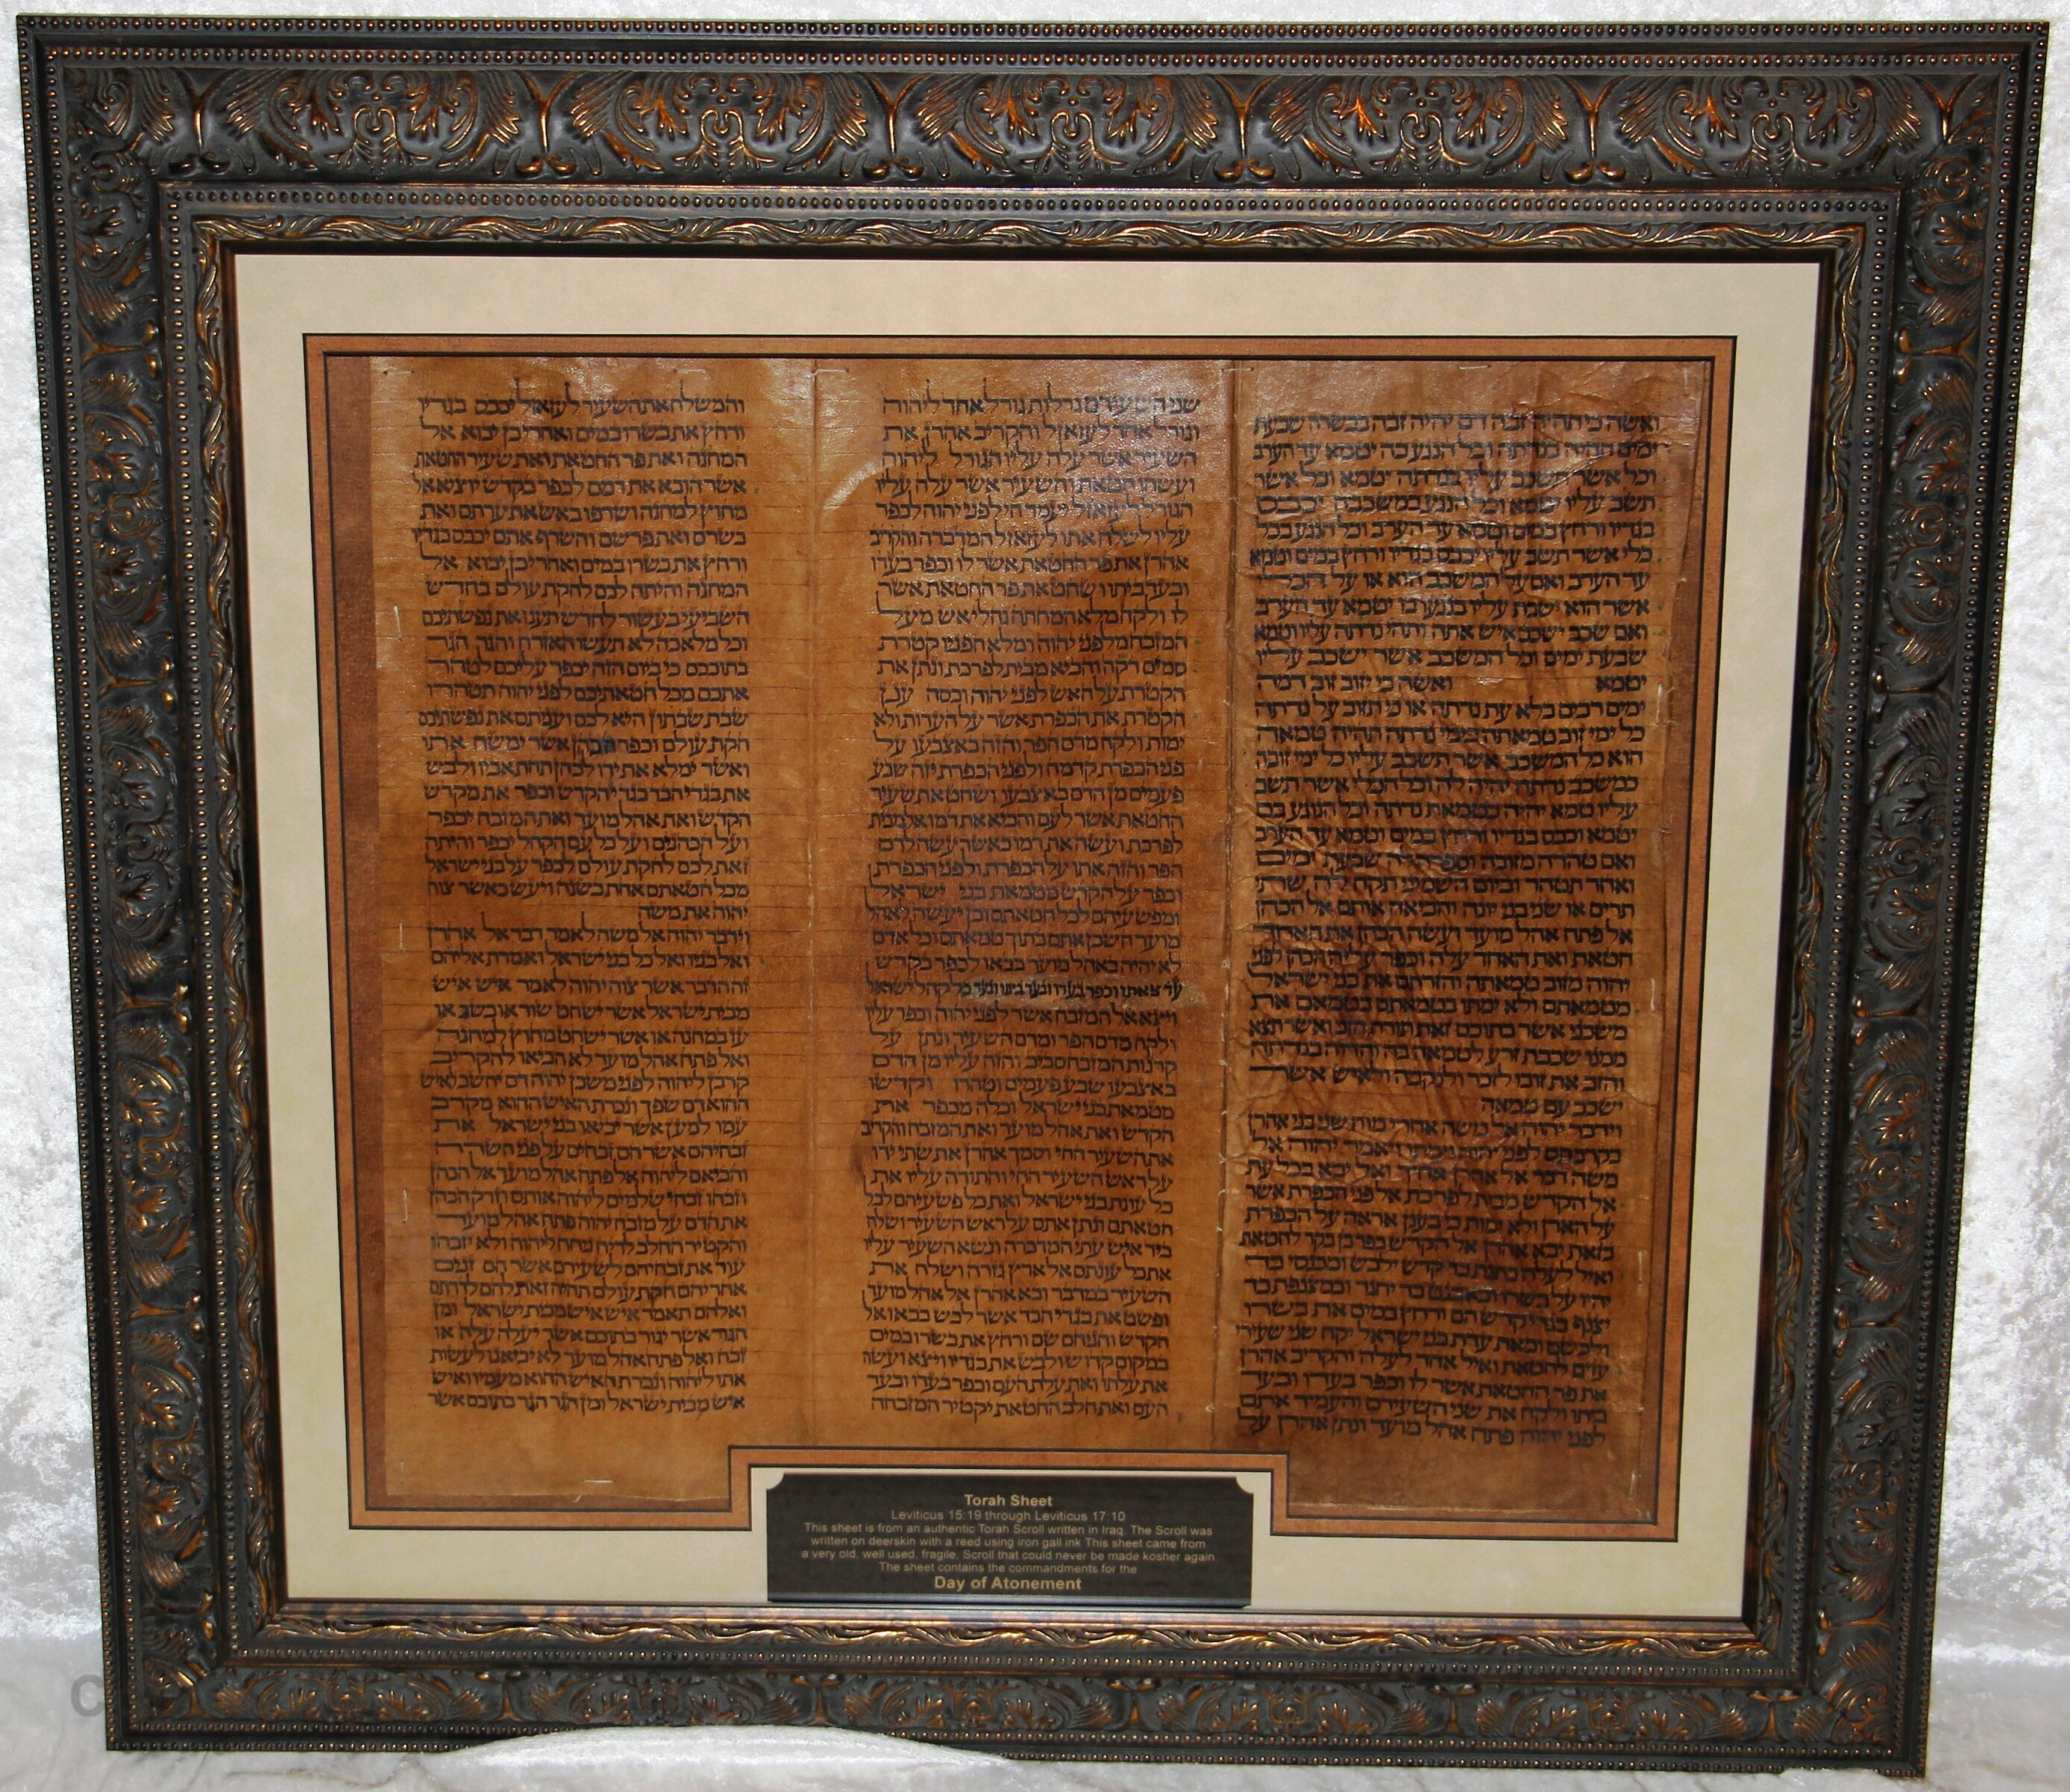 Framed deerskin Torah sheet The Day of Atonement – Leviticus 15:19 to Leviticus 17:10